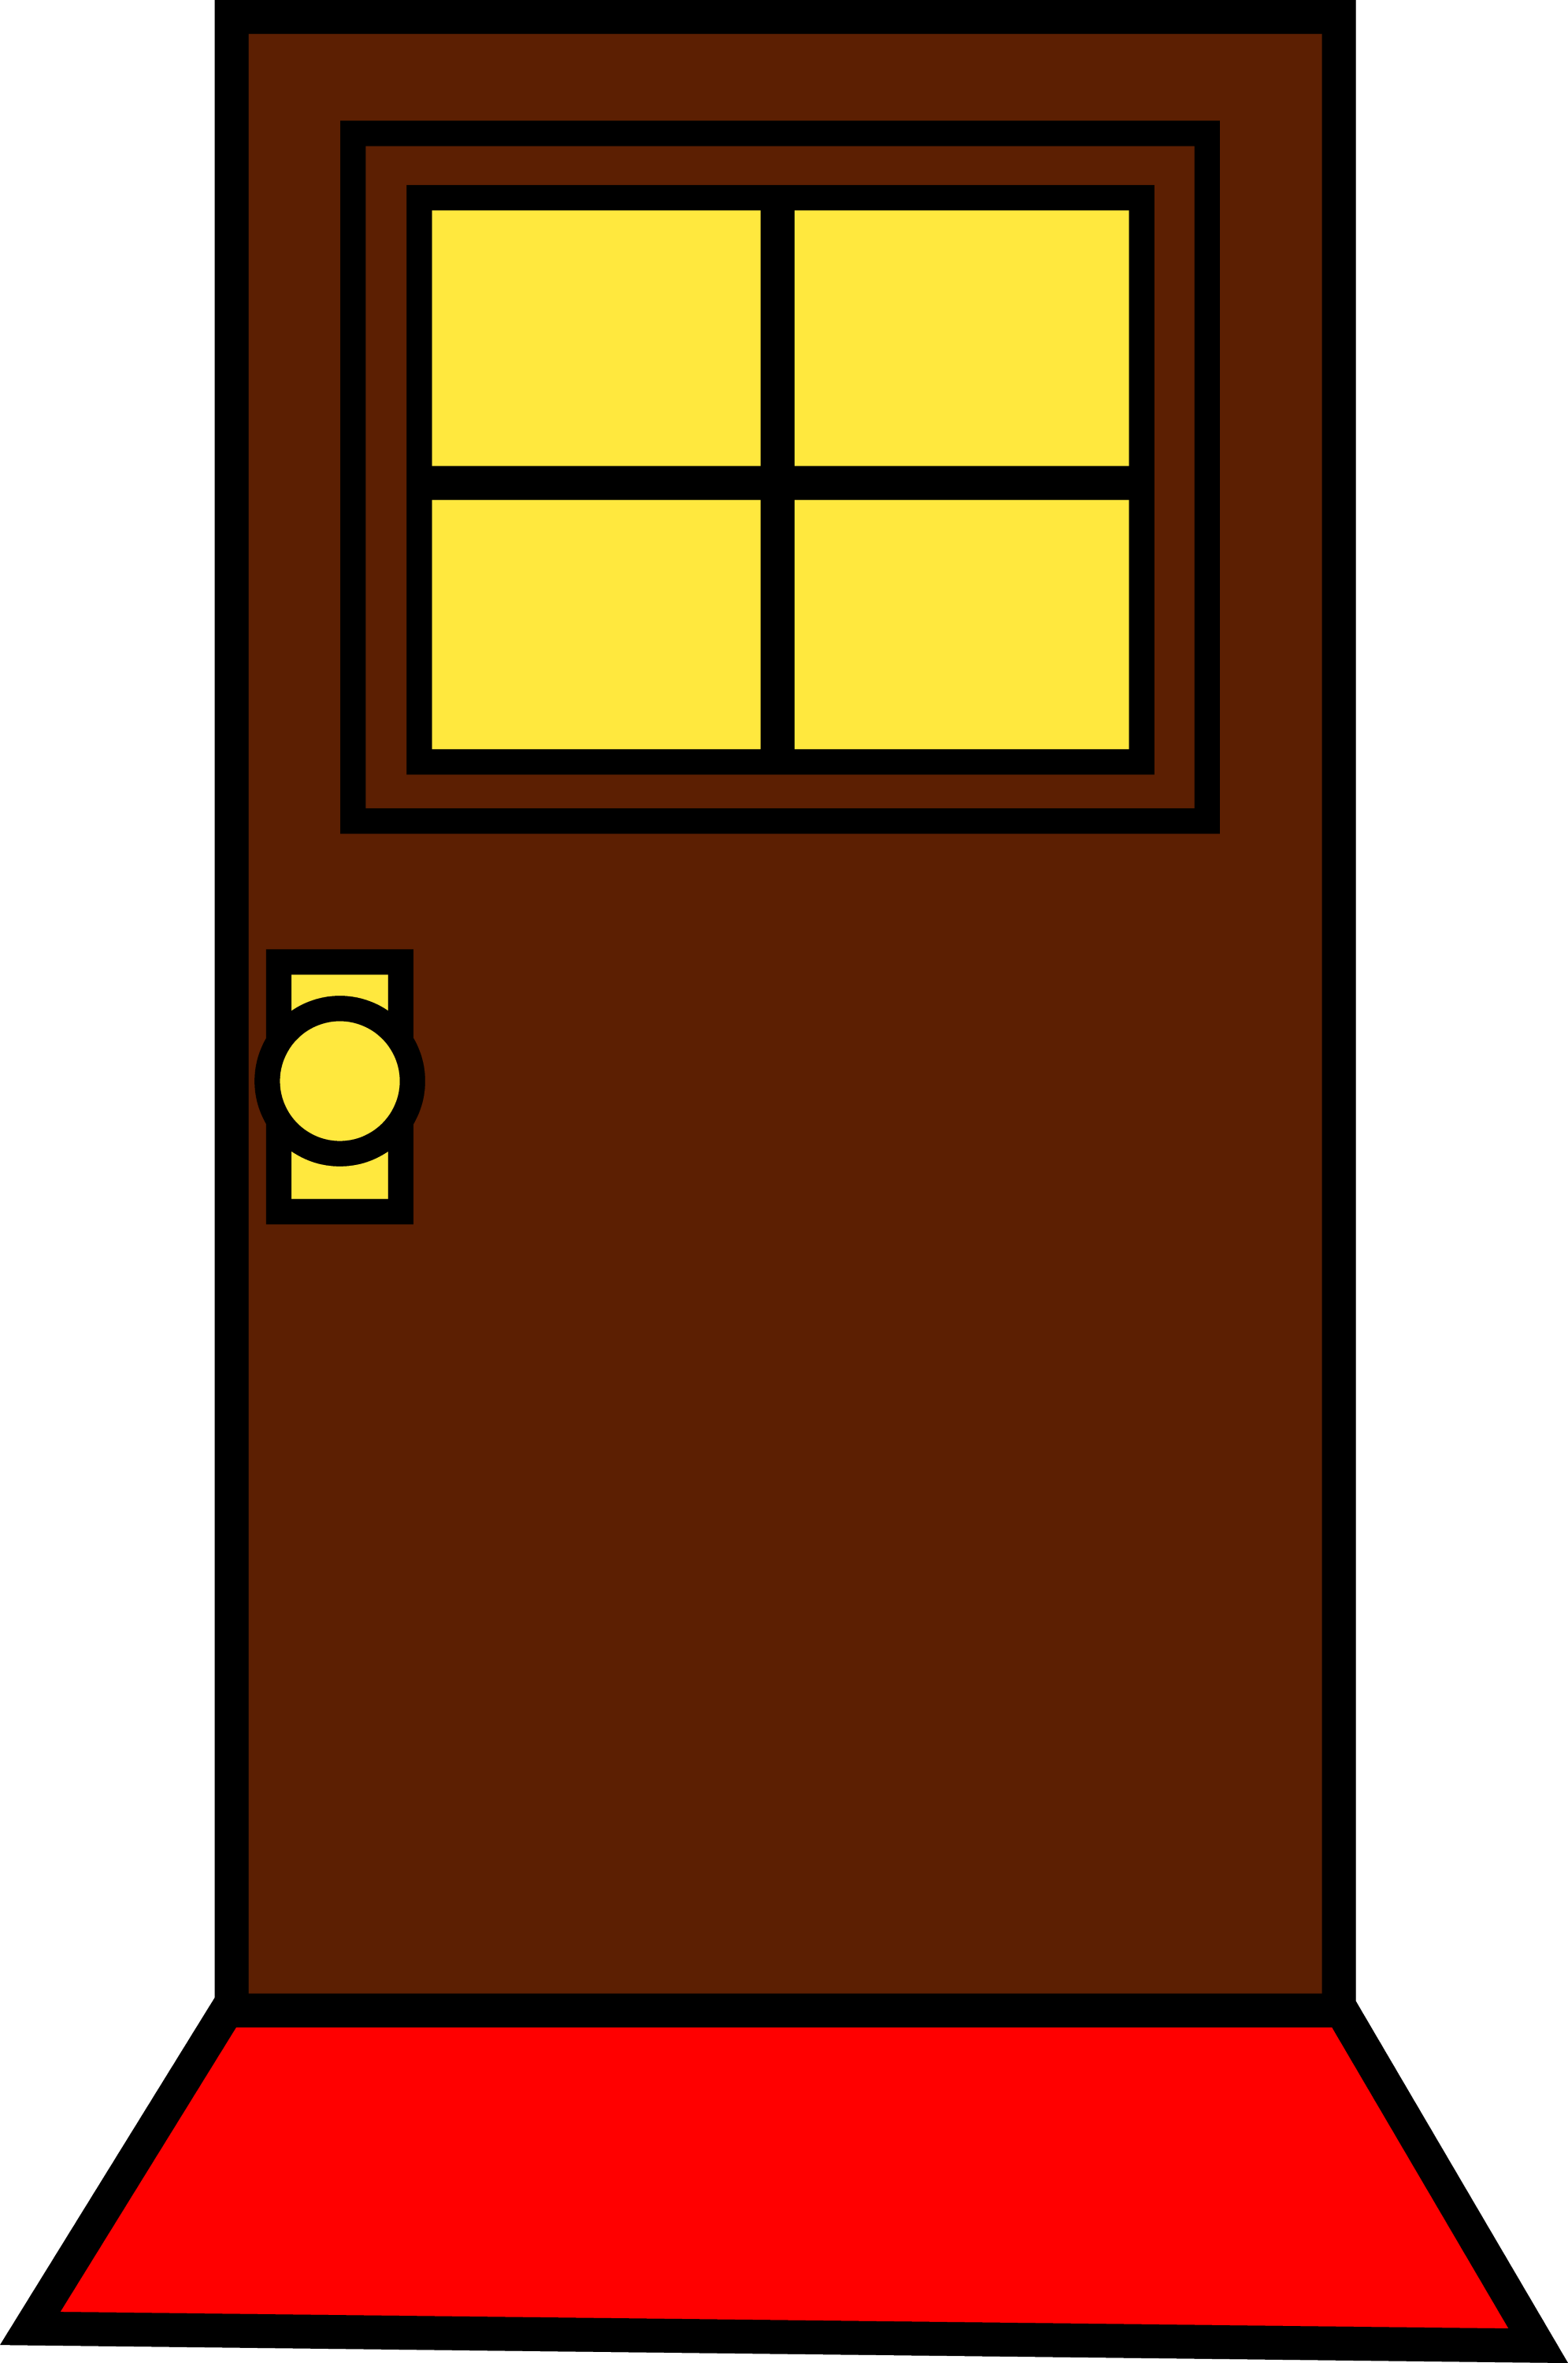 Remarkable Cartoon Door Clip Art 3856 x 5811 · 116 kB · png